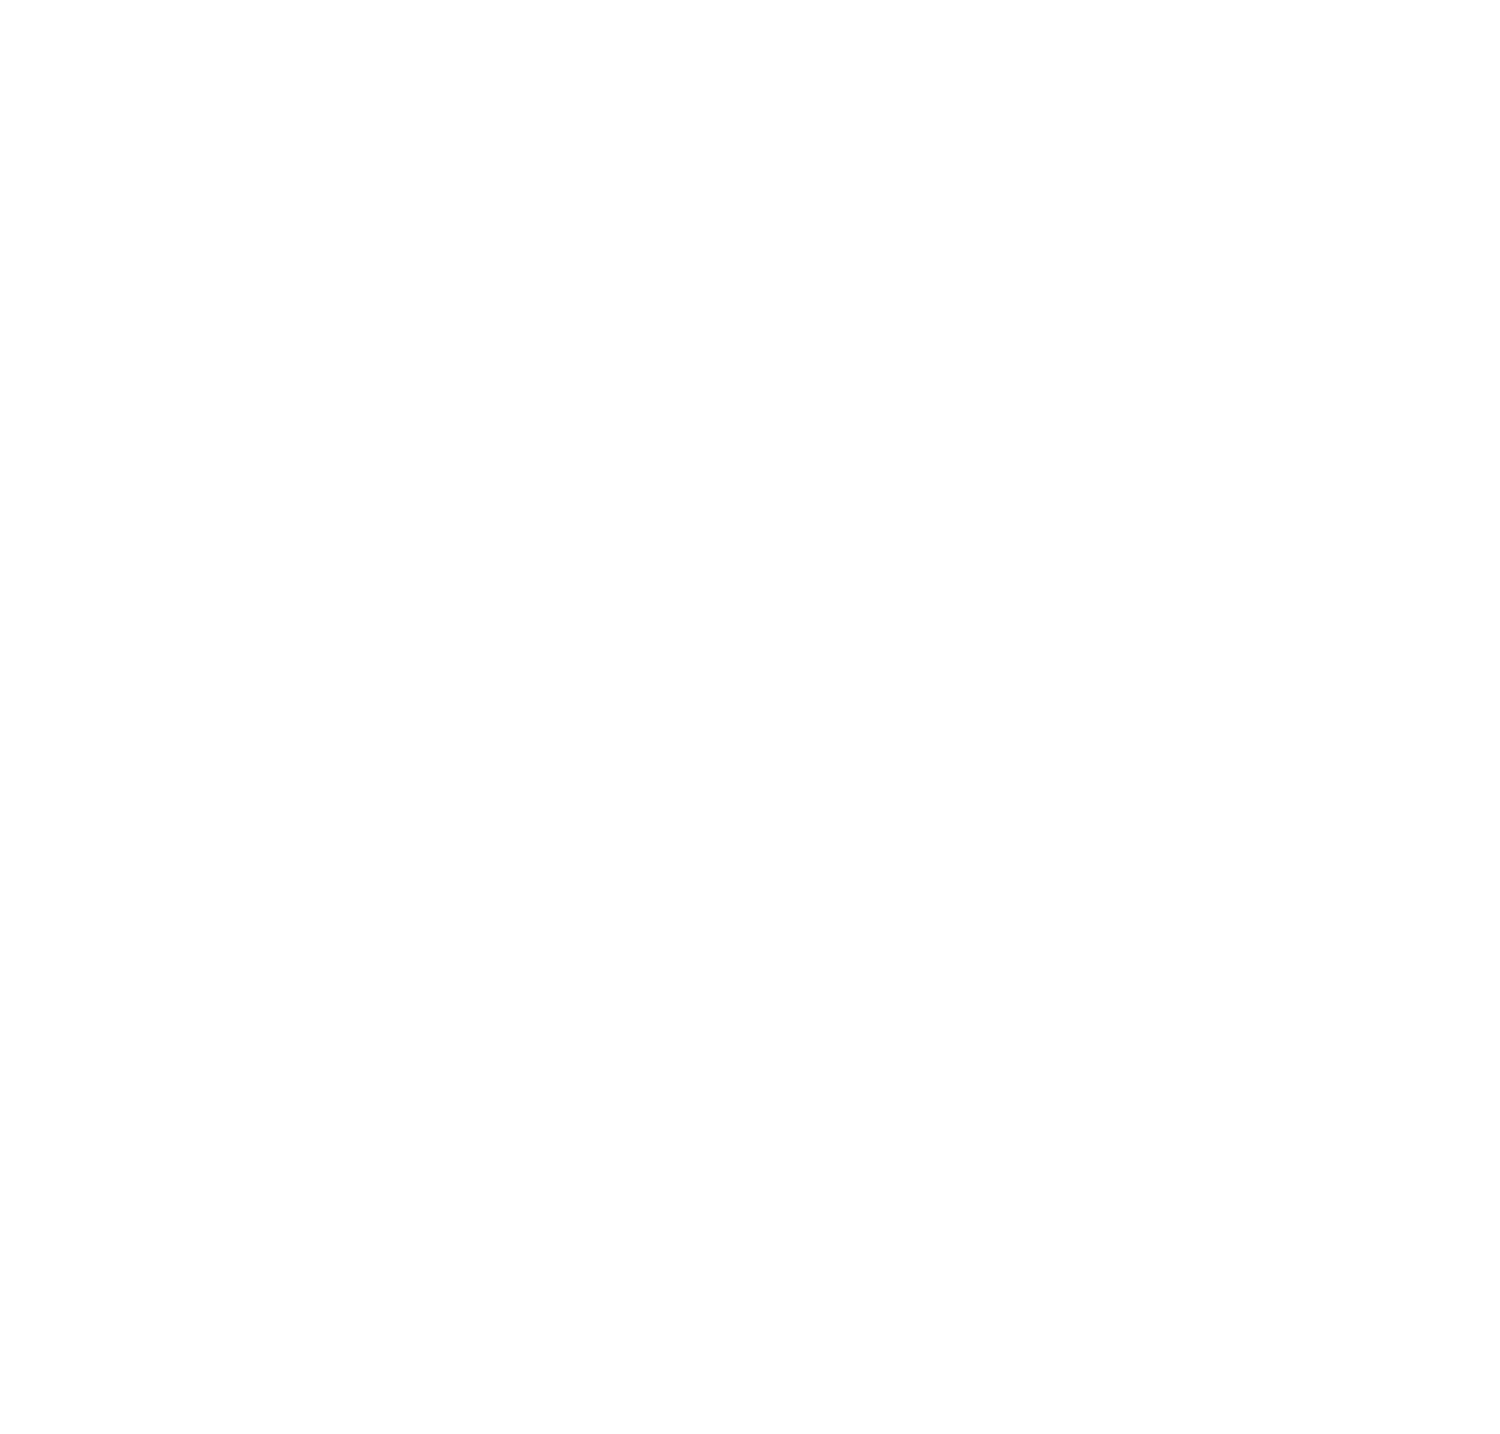 Onward & Upward Worship